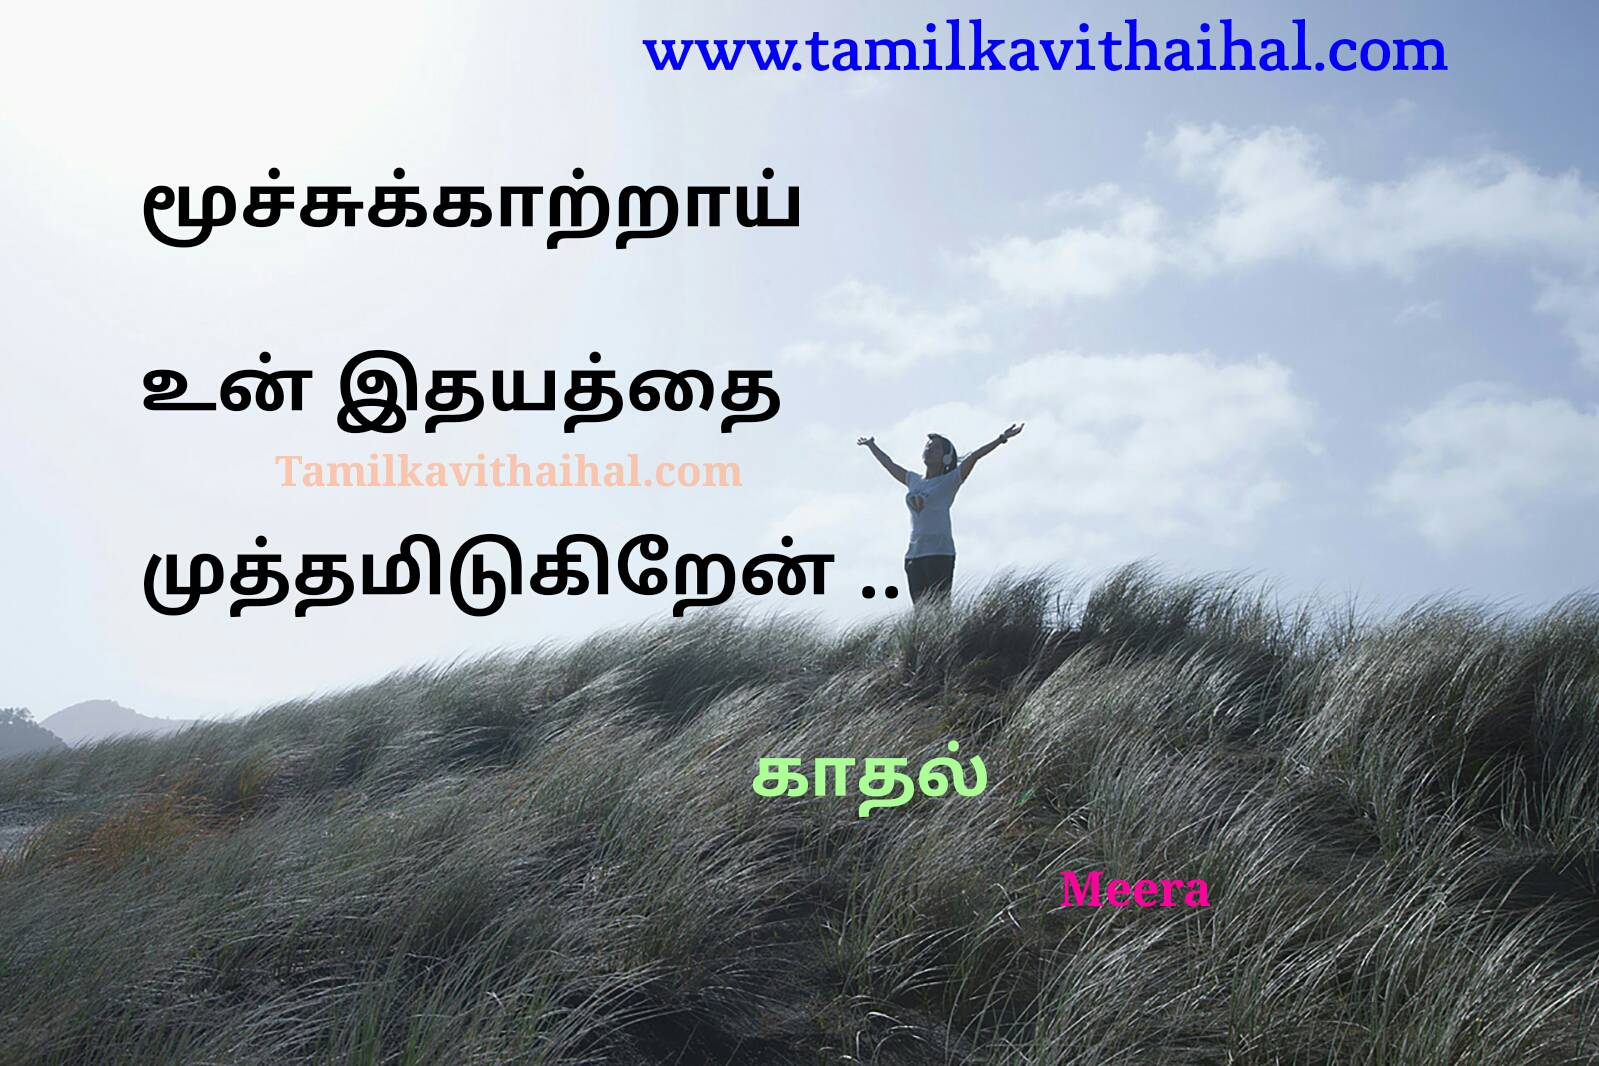 Best love hikoo kavithai for tamil love haikoo meera poem facebook status download